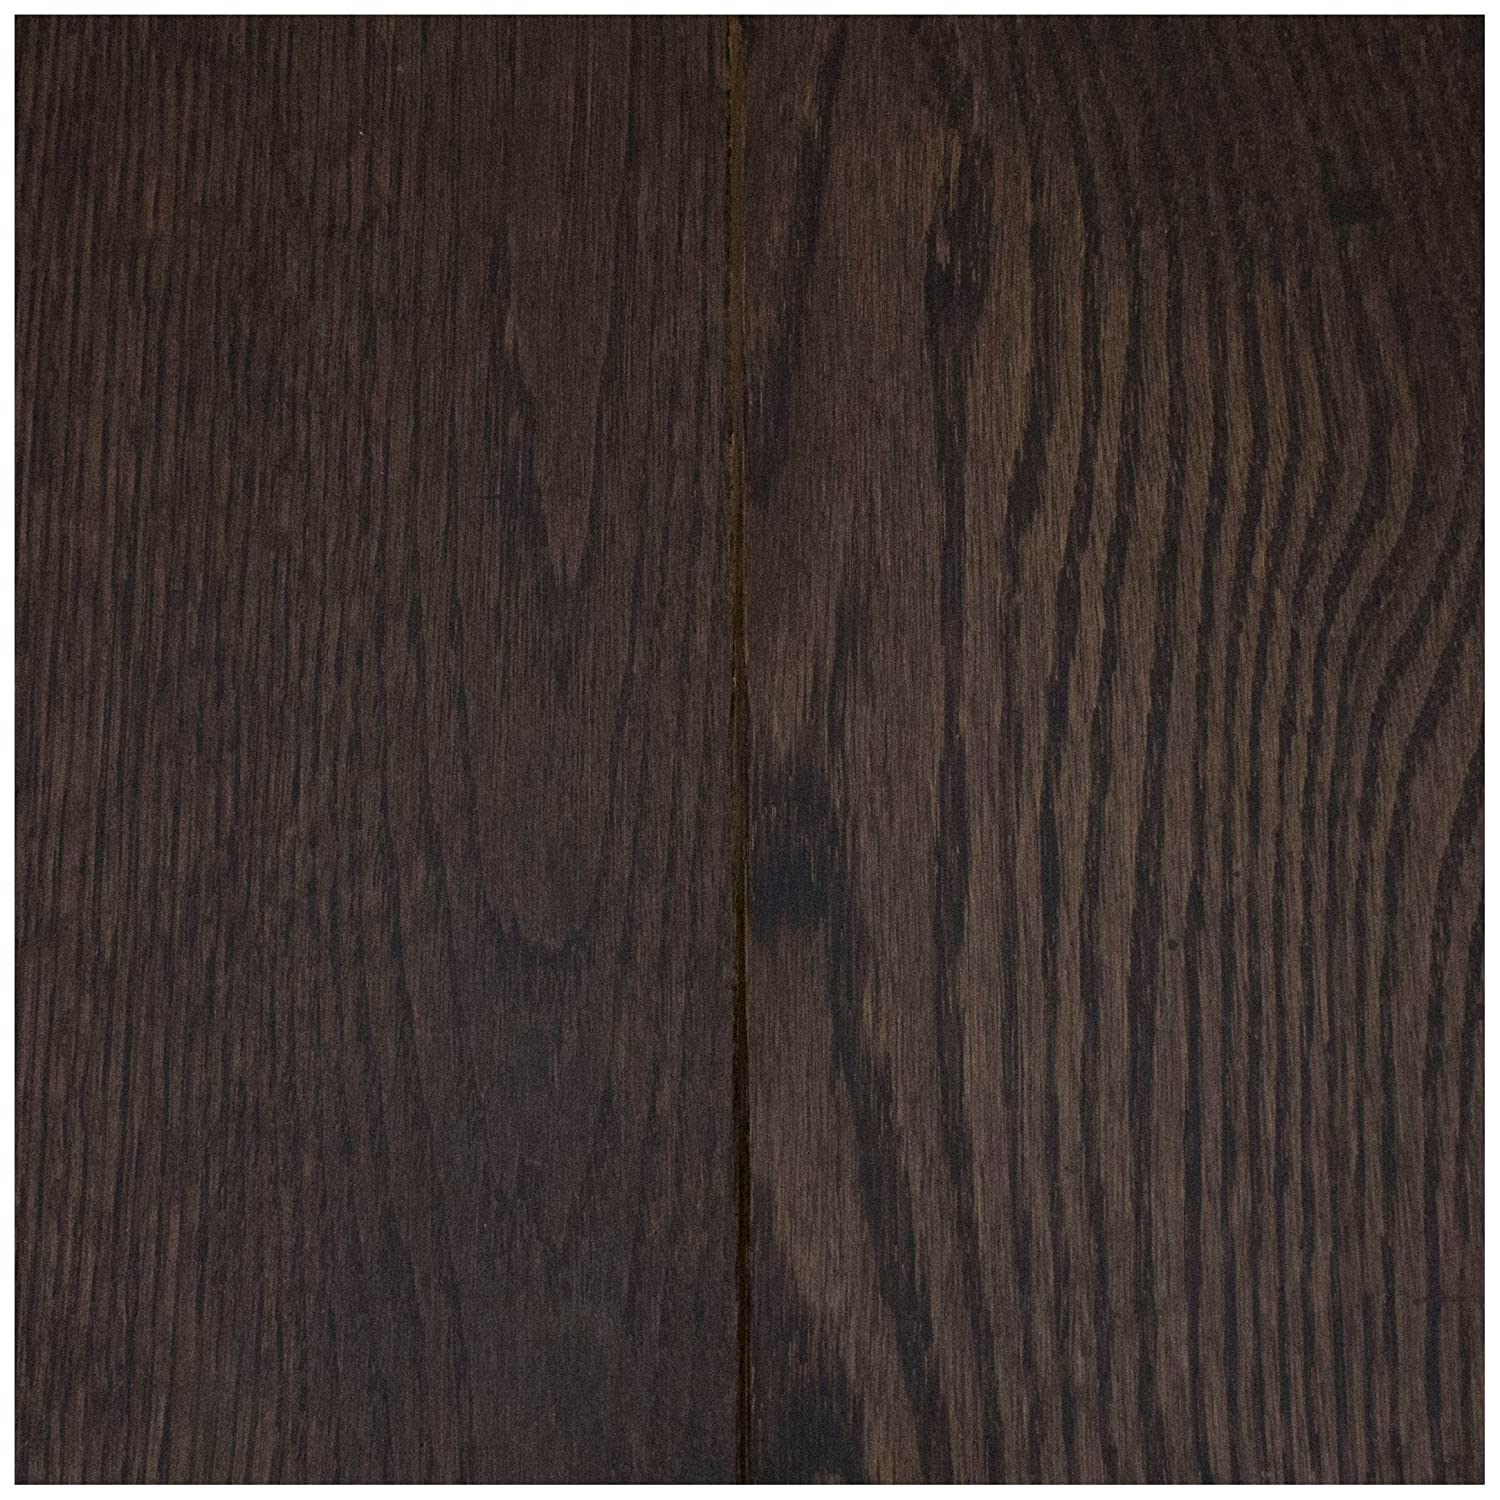 Prime Harvest Red Oak Stair Nose 96 L Moldings Online Armstrong Cocoa Bean Collection